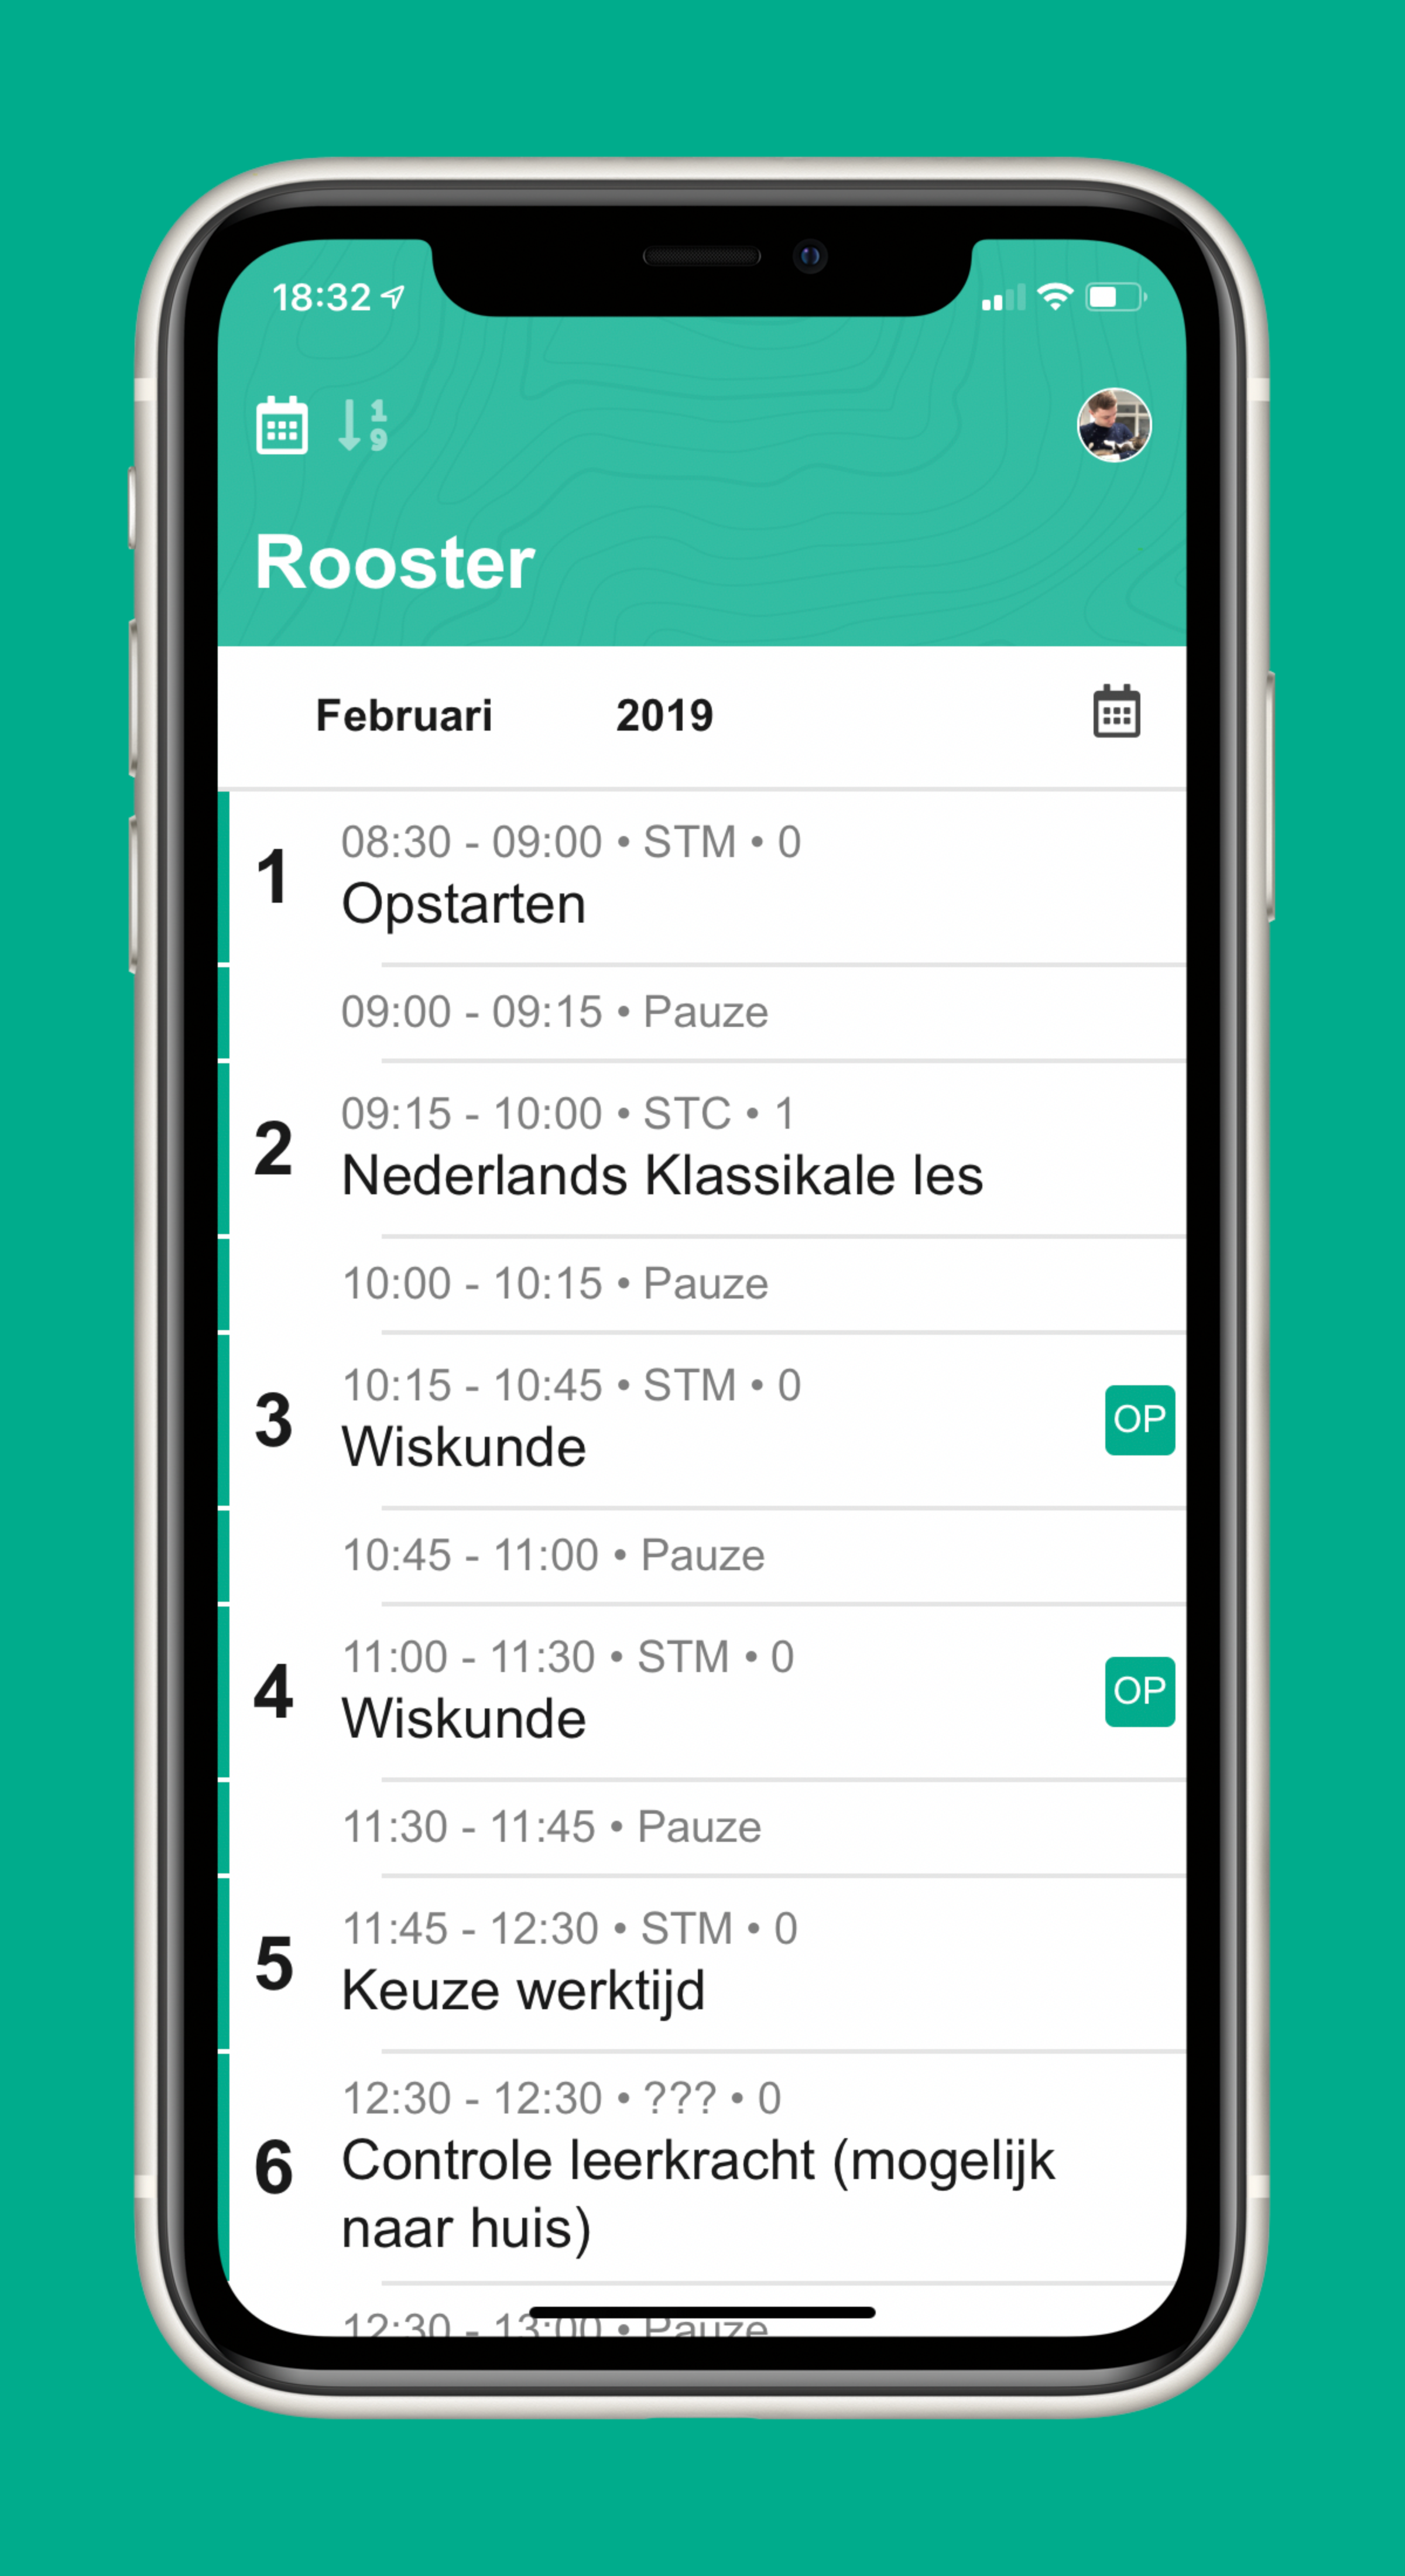 List view of schedules items